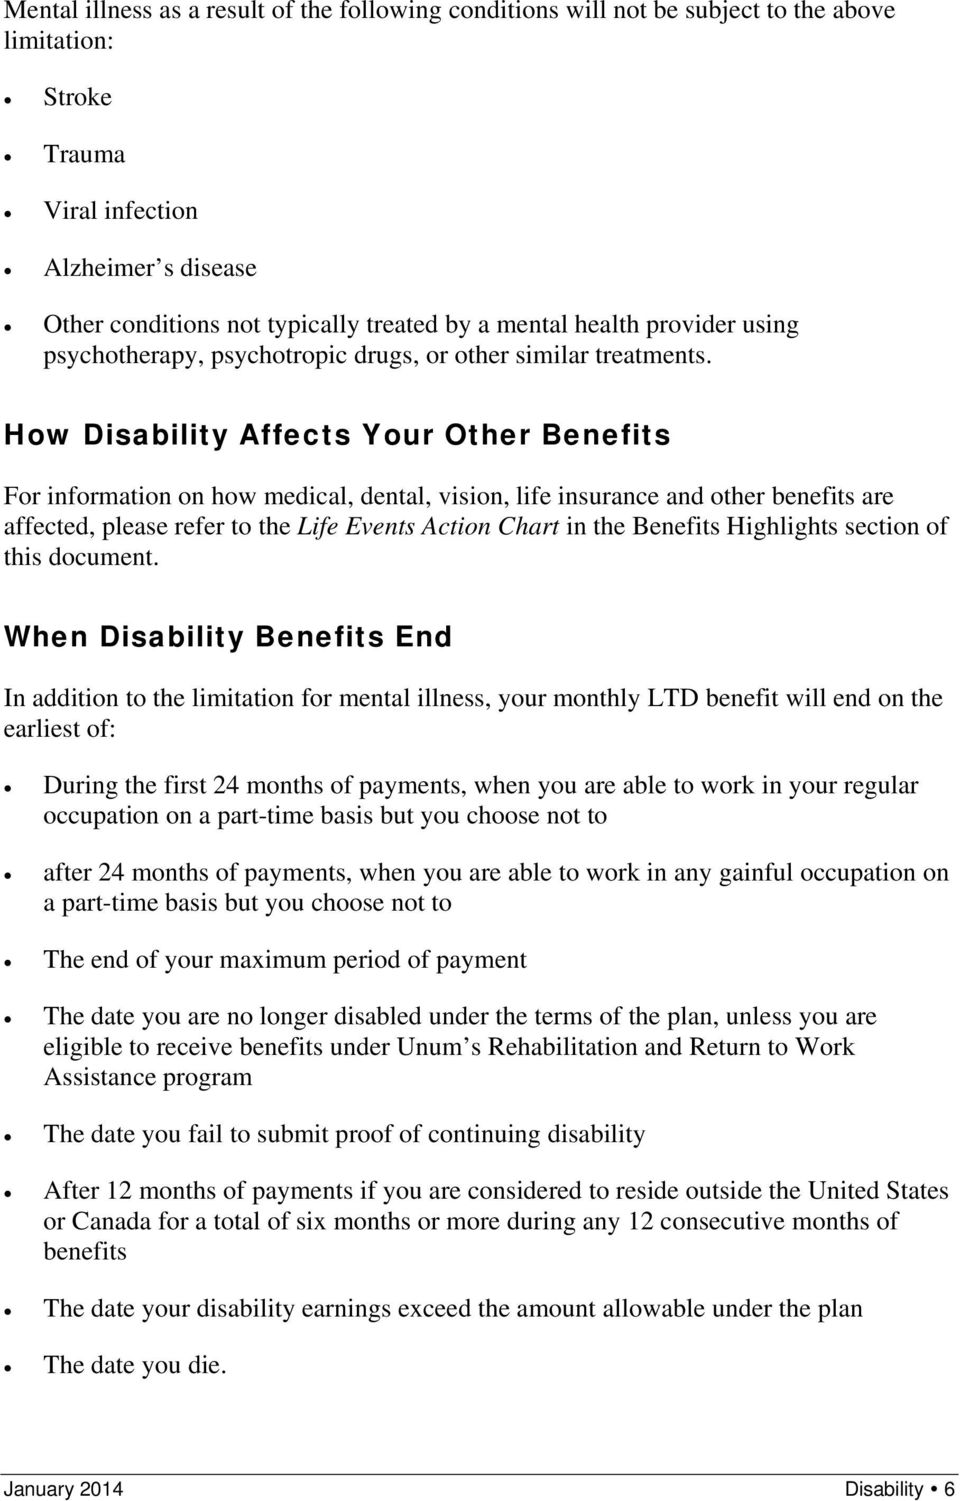 How Disability Affects Your Other Benefits For information on how medical, dental, vision, life insurance and other benefits are affected, please refer to the Life Events Action Chart in the Benefits